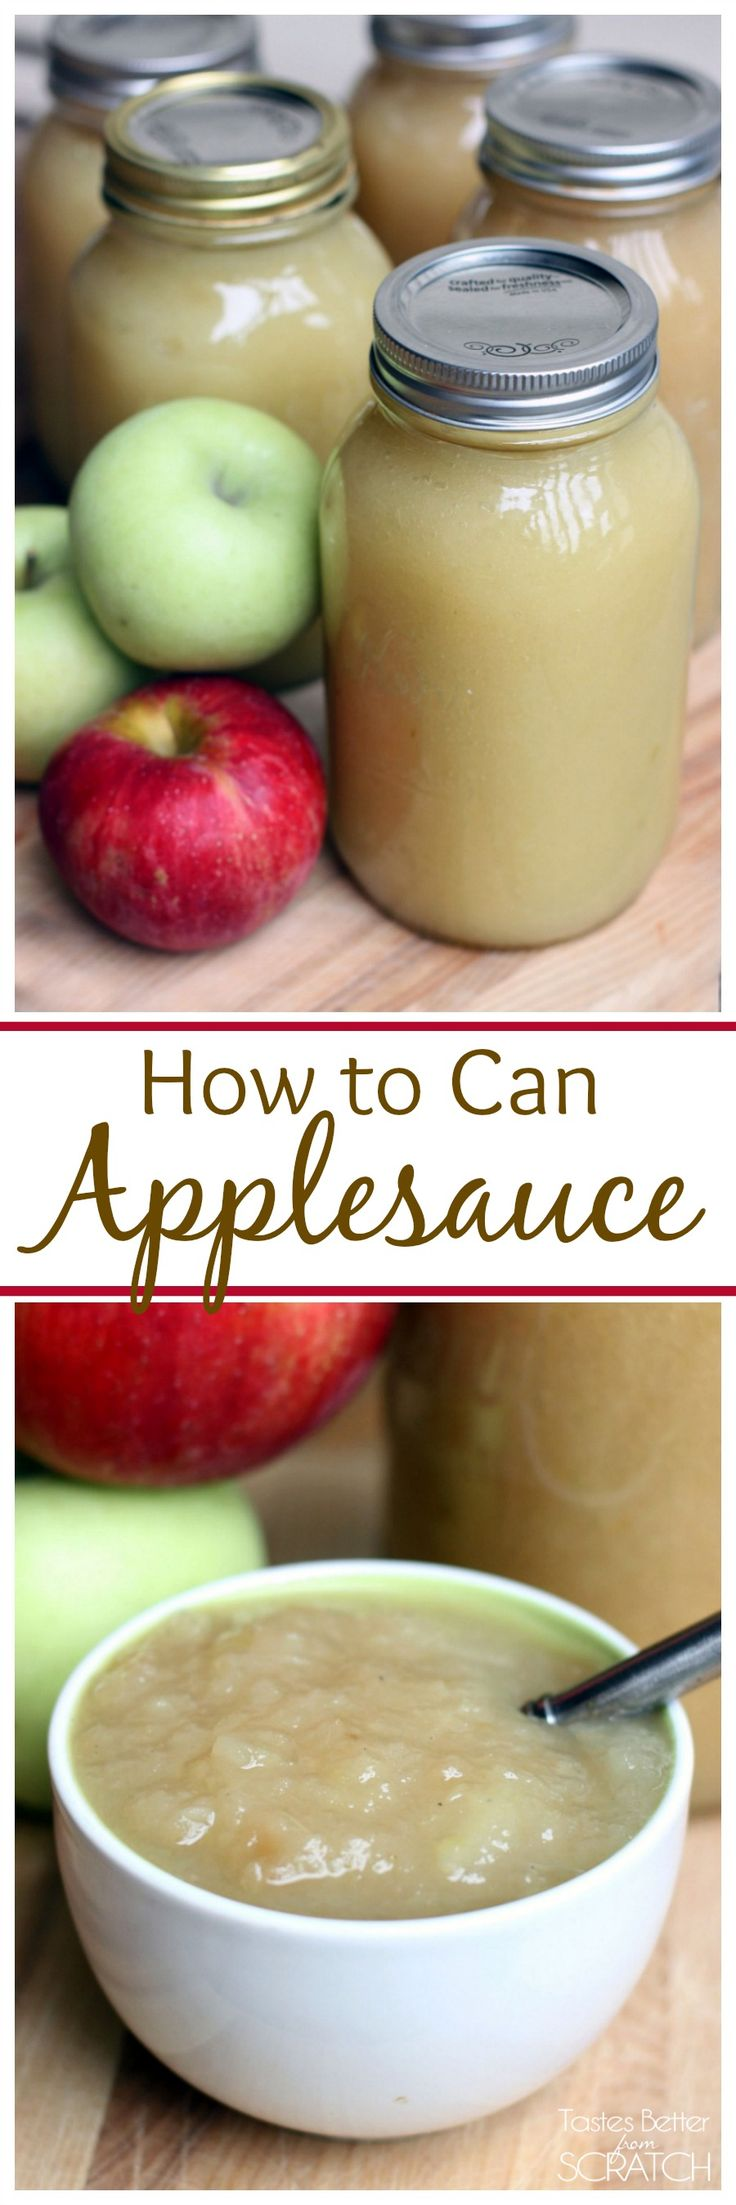 How to Can Applesauce-Recipe and Tutorial on MyRecipeMagic.com